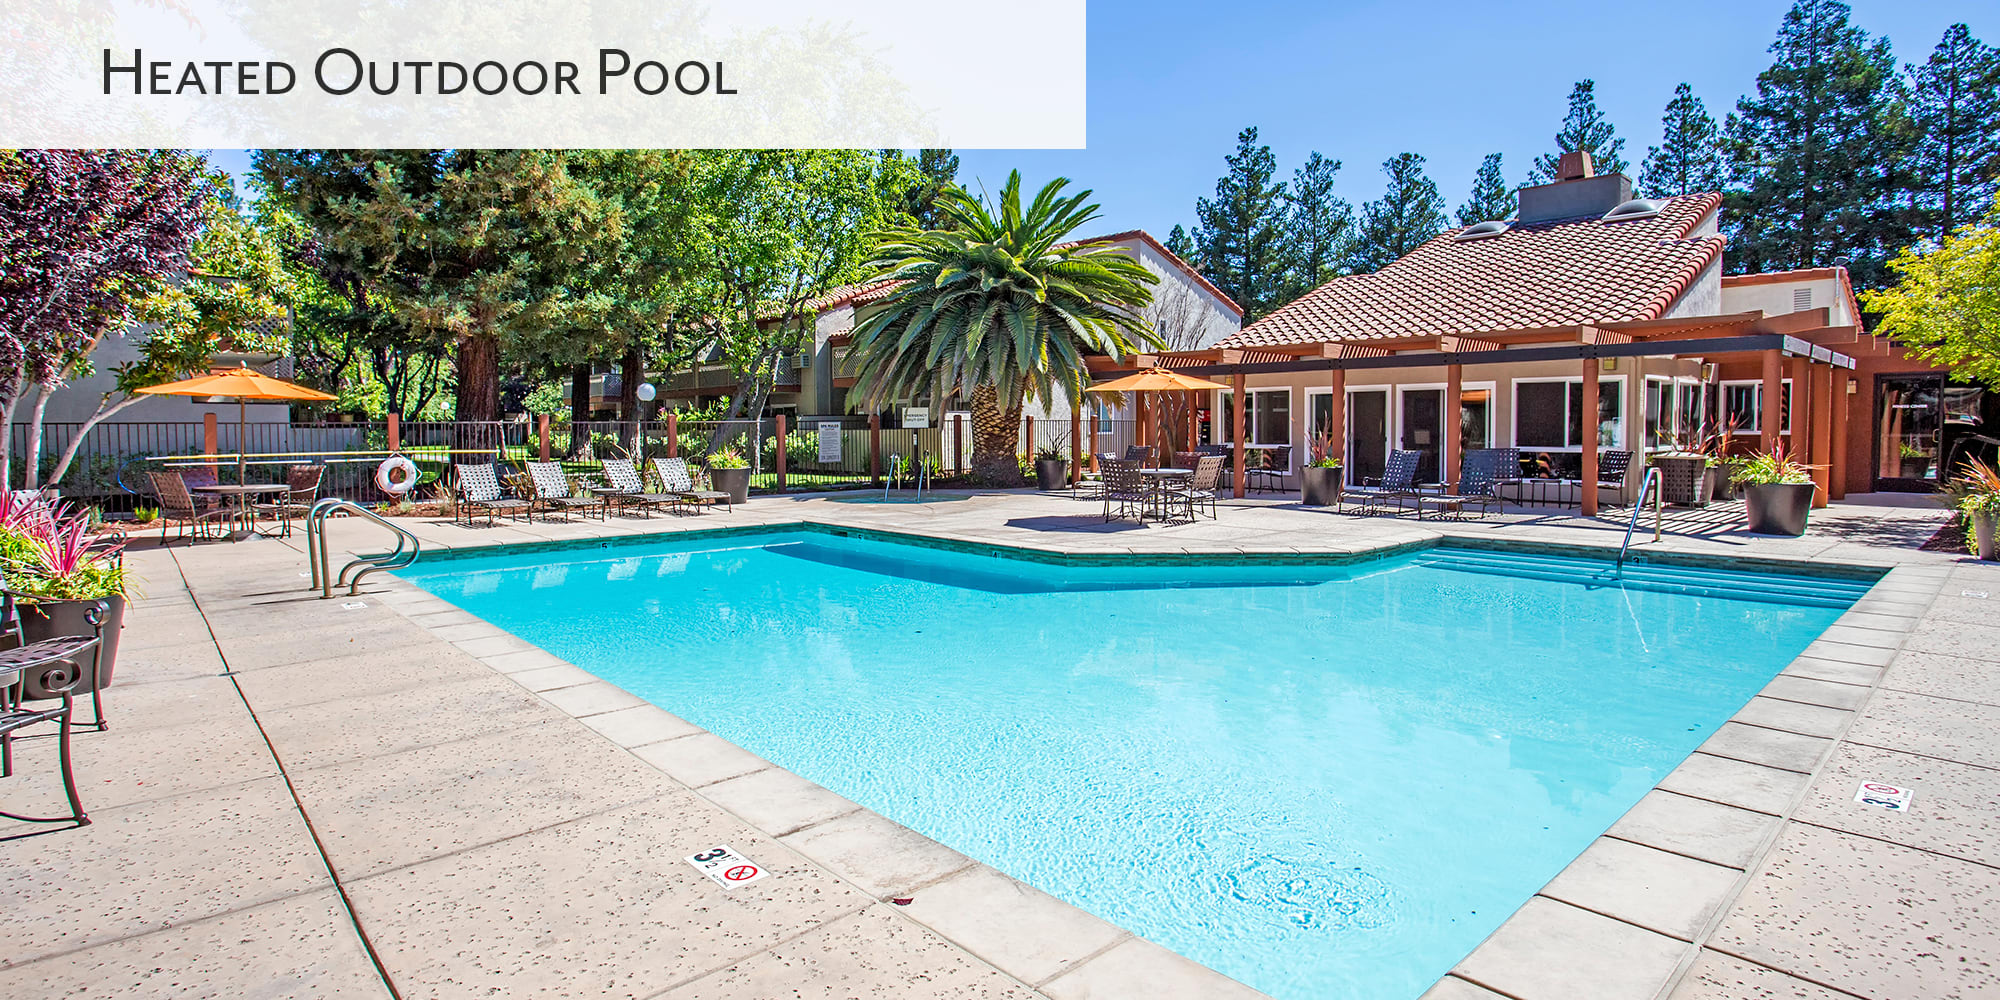 Heated outdoor swimming pool at Valley Plaza Villages in Pleasanton, California